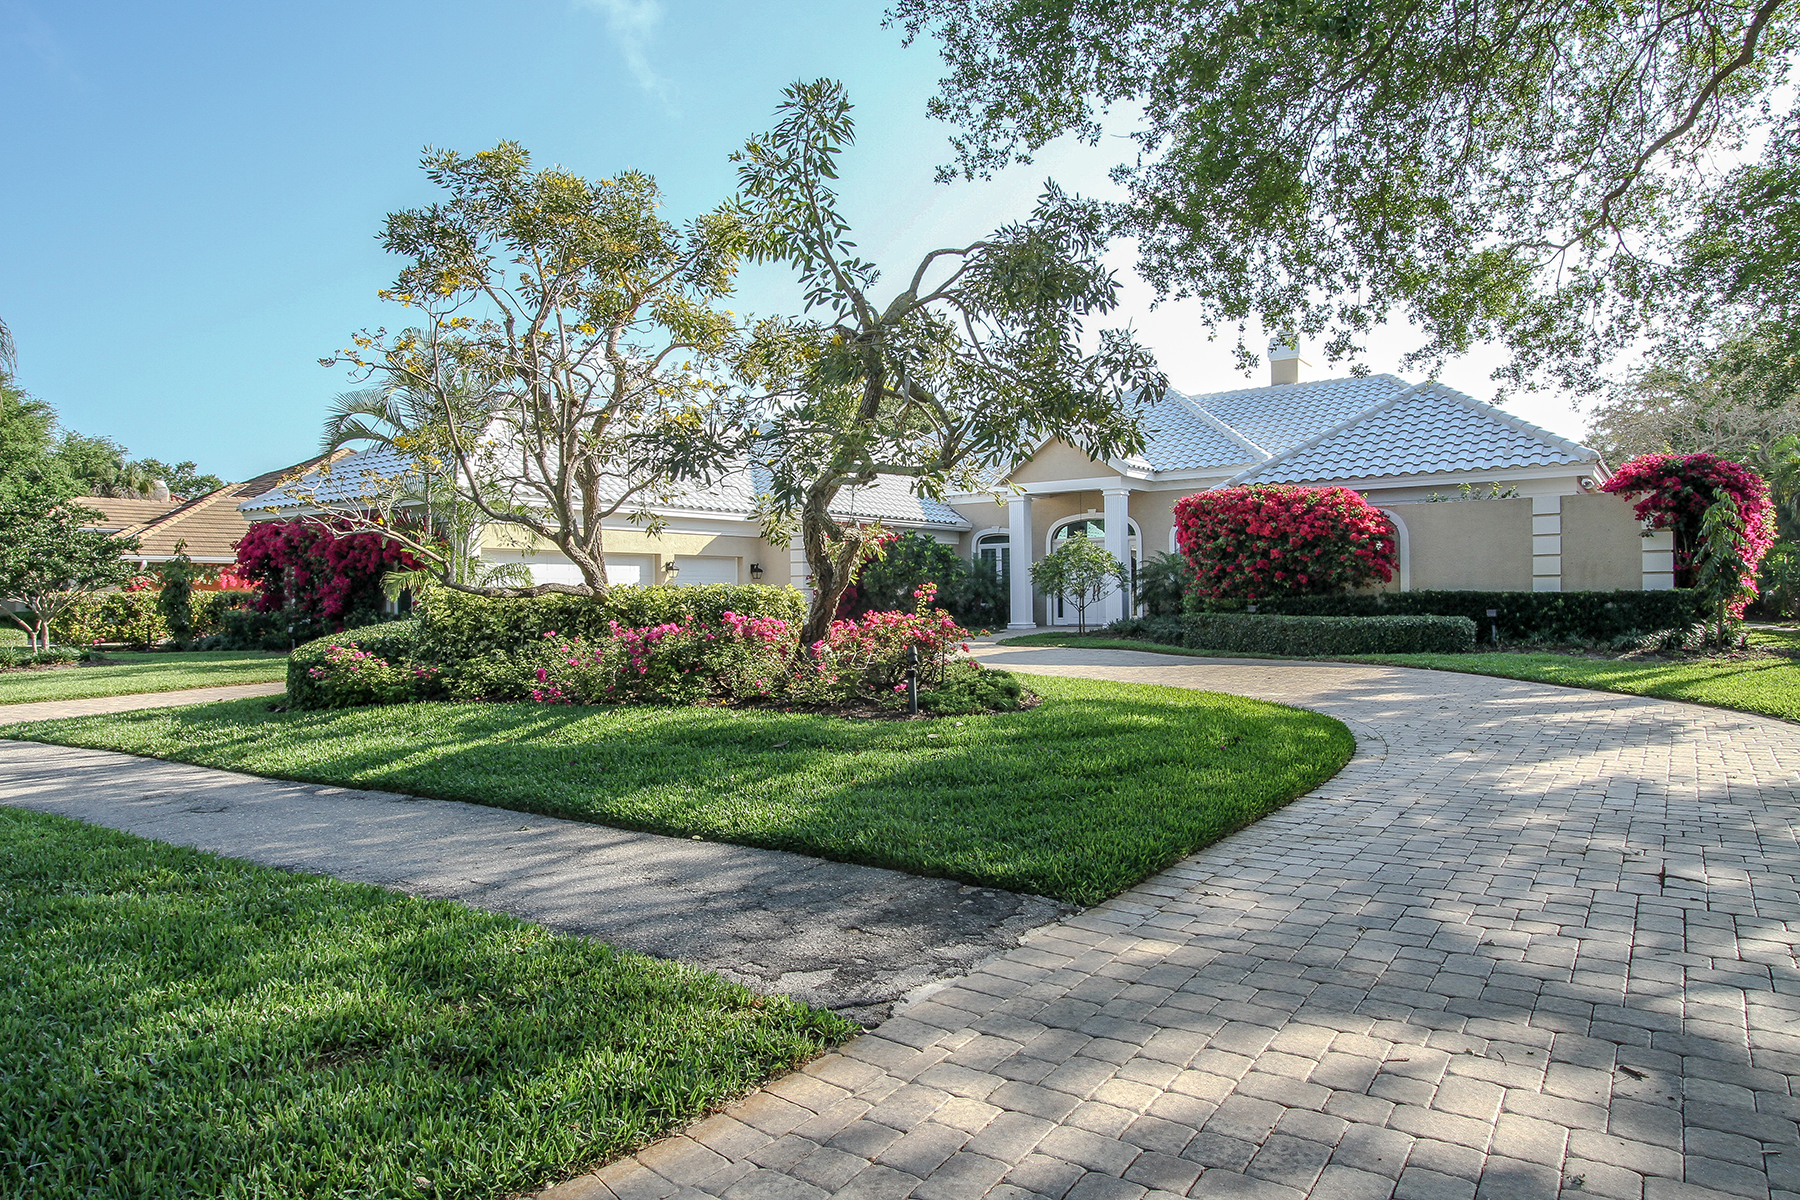 Single Family Home for Rent at PELICAN BAY - BARRINGTON CLUB 6974 Greentree Dr Naples, Florida 34108 United States